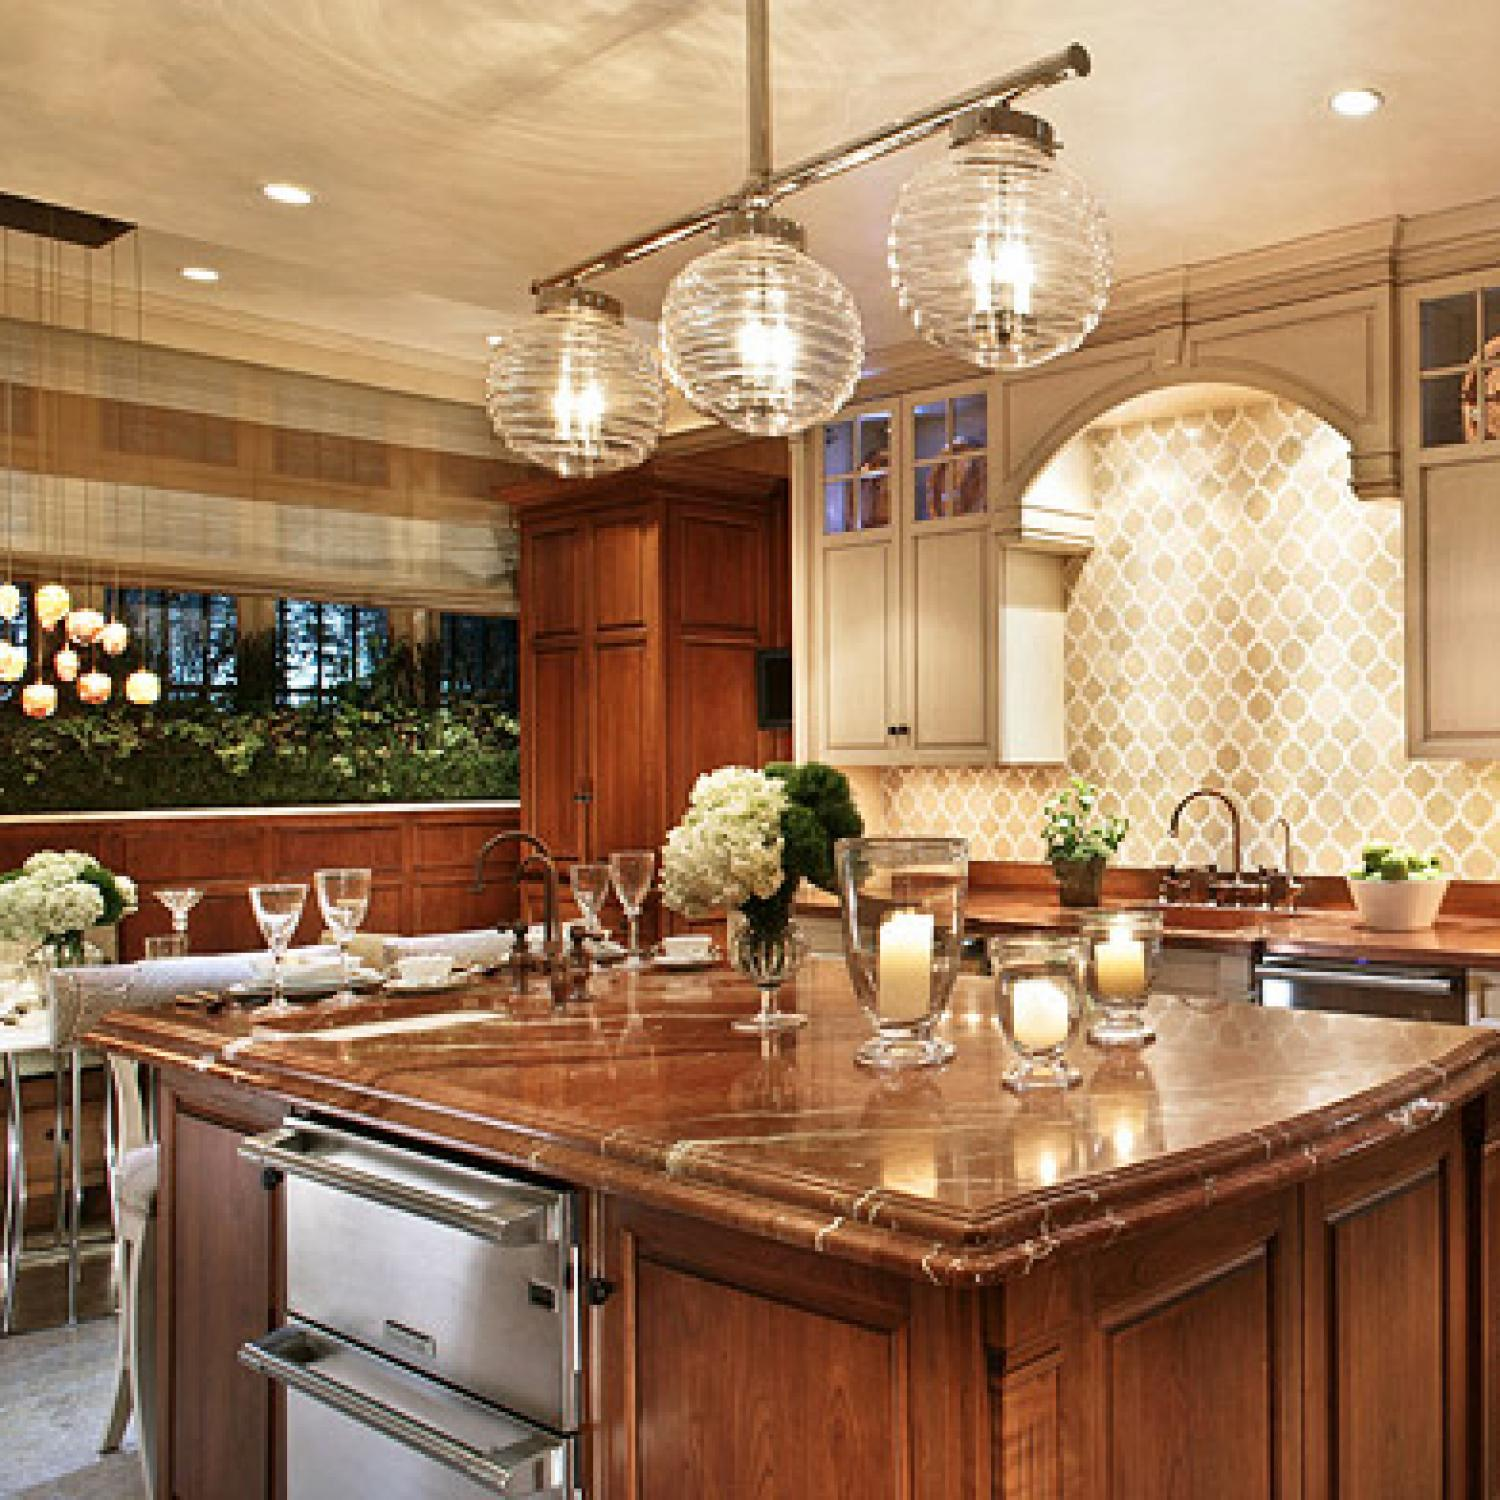 Interior Design Kitchen Traditional: Welcoming, Intimate Showhouse Kitchen